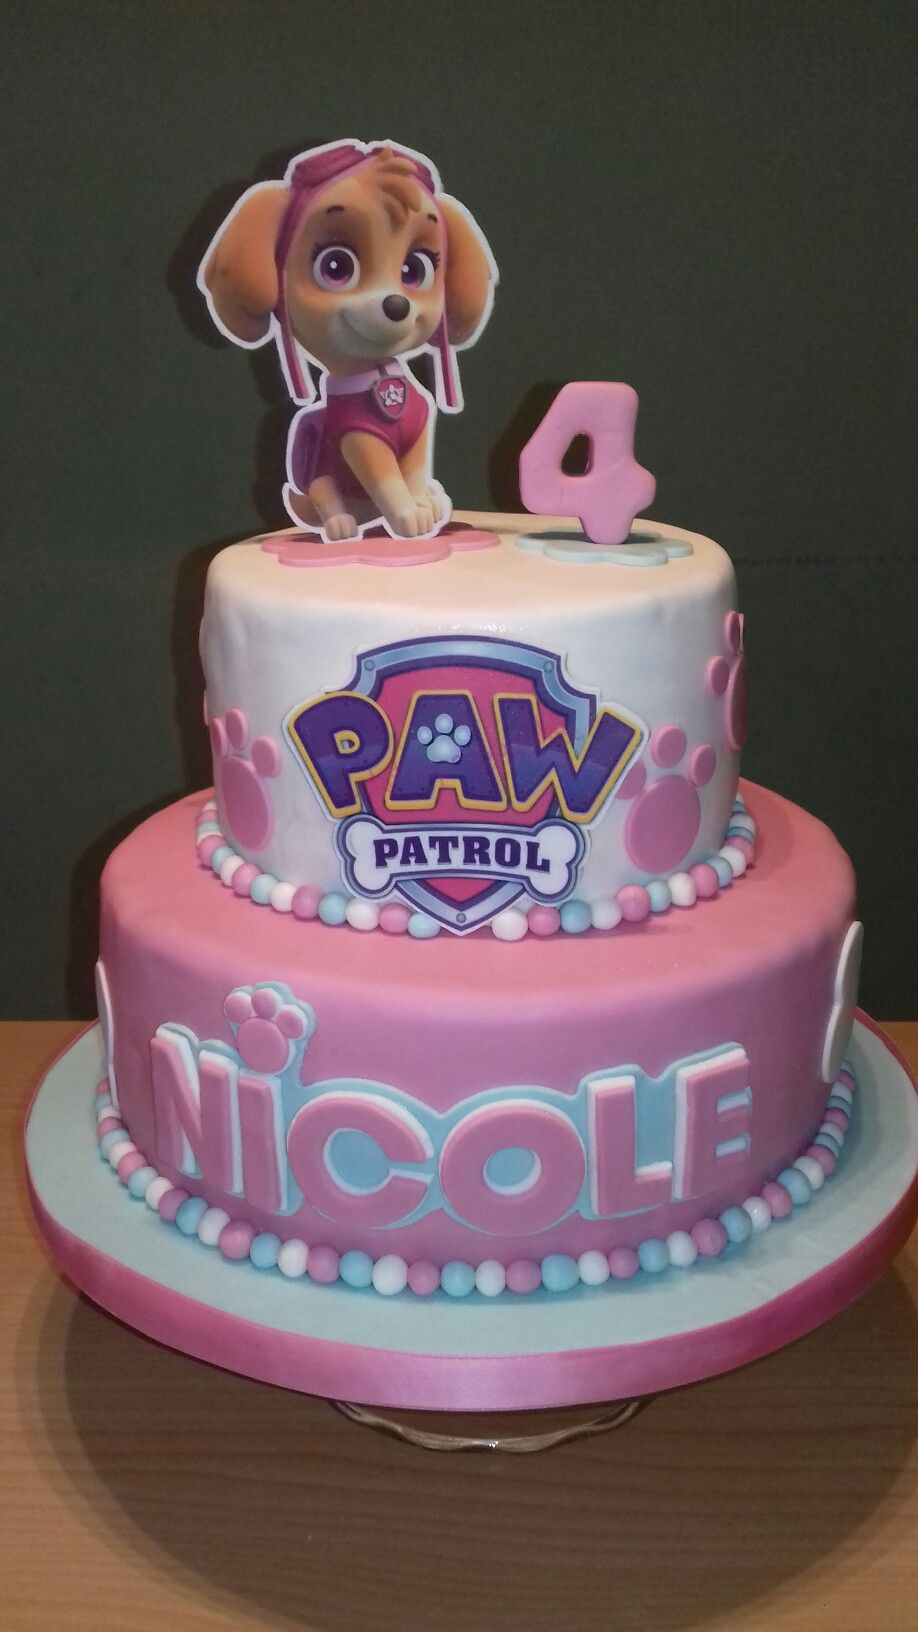 Best ideas about Paw Patrol Girl Birthday Cake . Save or Pin Paw patrol Paw patrol in 2019 Now.